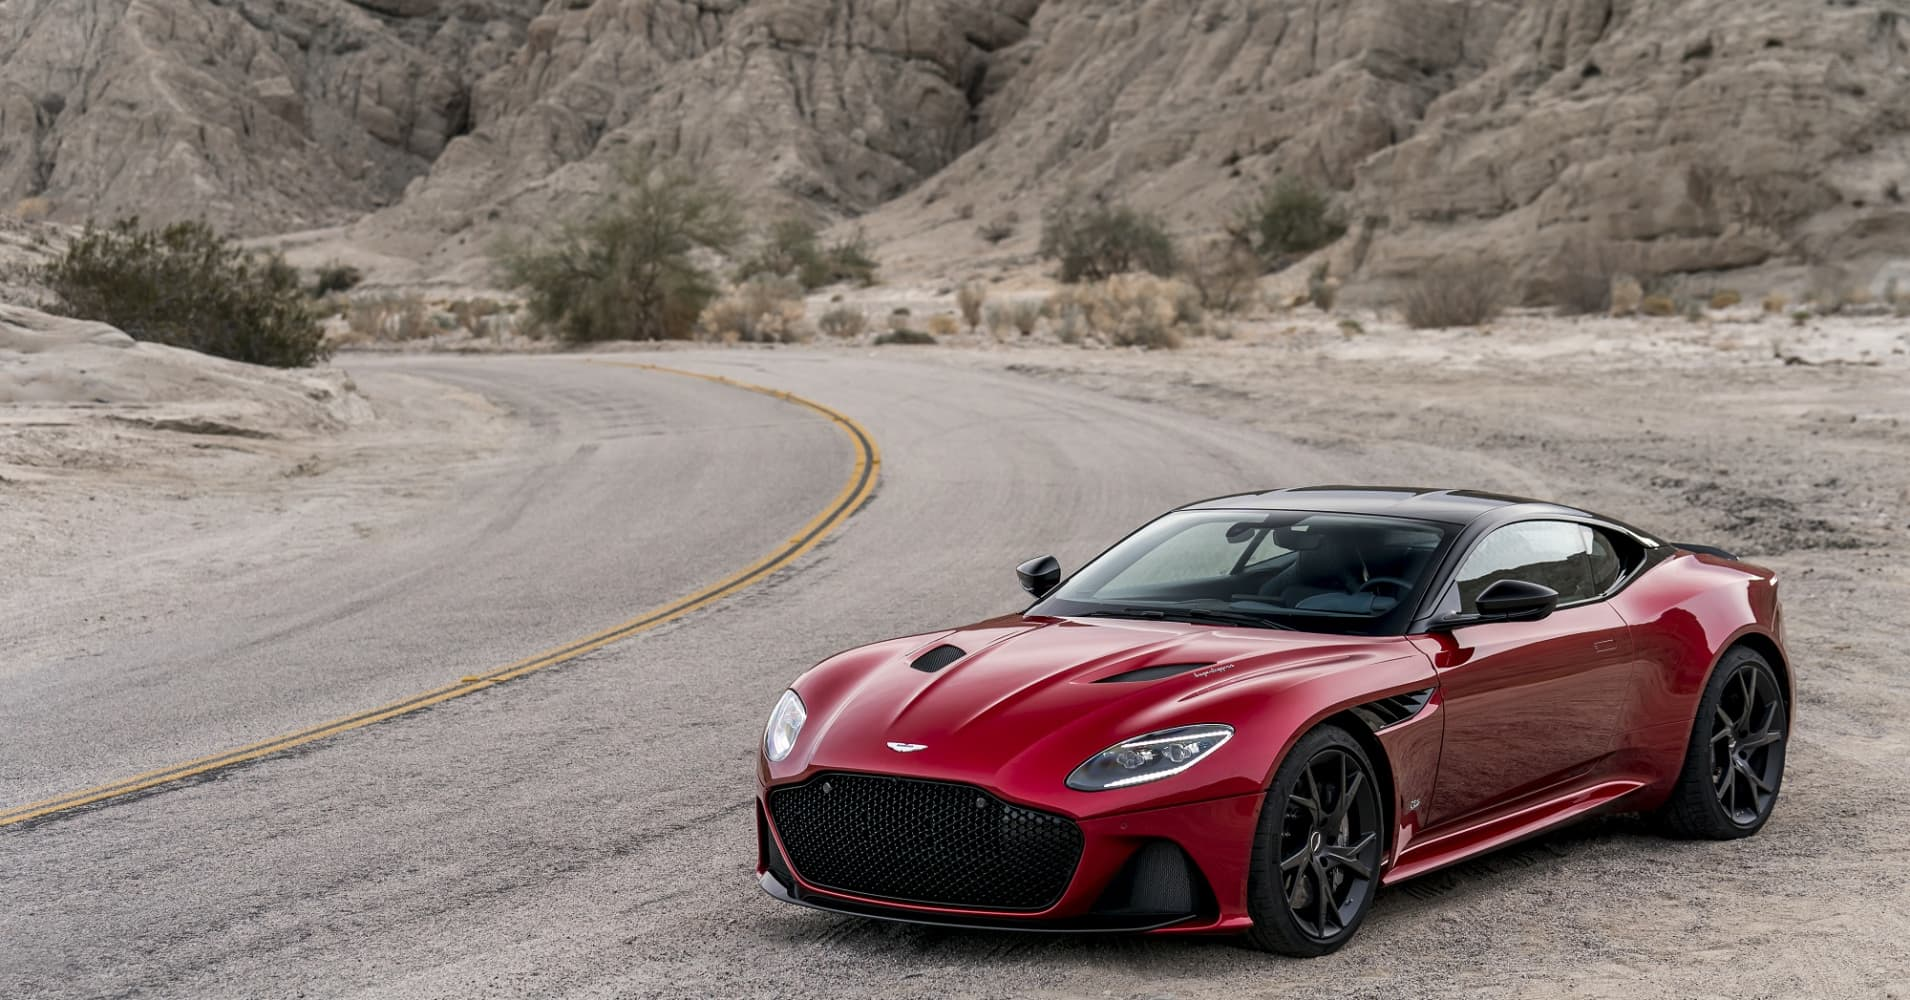 Photos New Aston Martin DBS Superleggera Supercar - Aston martin pics